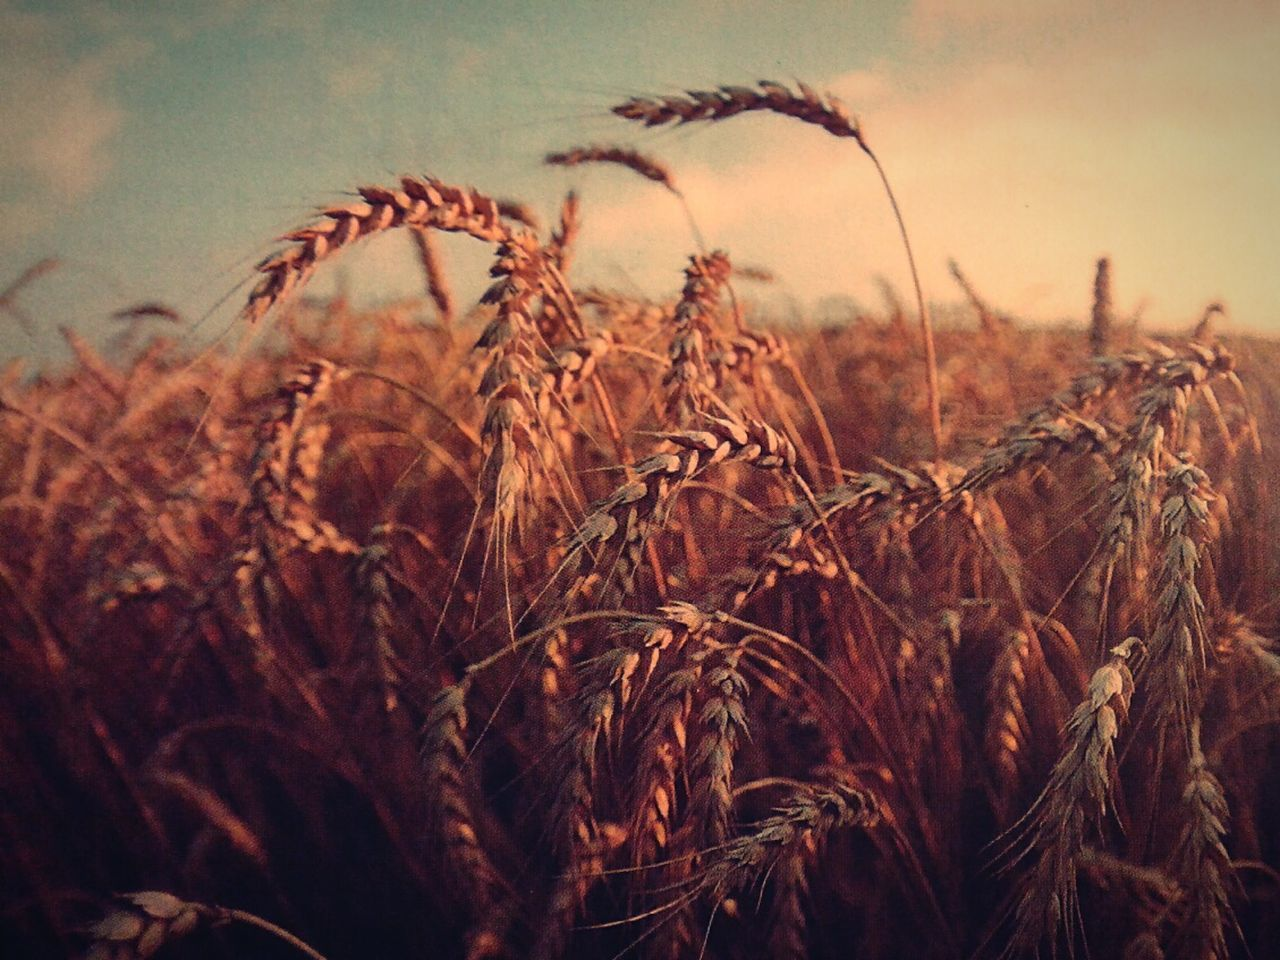 growth, field, agriculture, nature, plant, tranquility, crop, no people, cereal plant, wheat, day, outdoors, rural scene, close-up, beauty in nature, sky